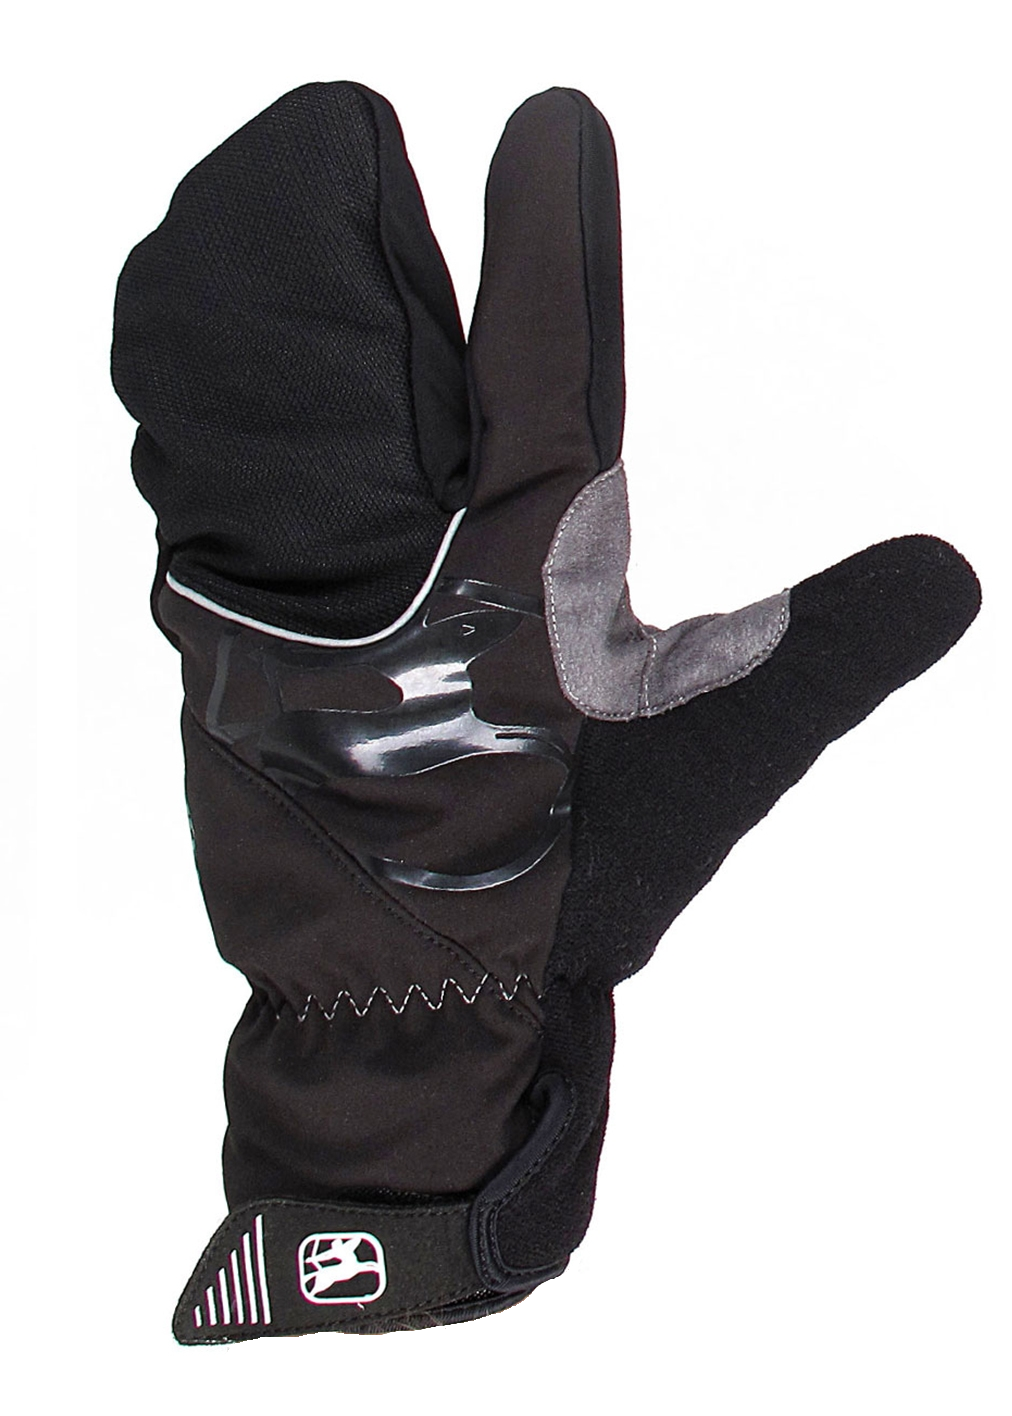 Giordana Sotta Zero Lobster Gloves